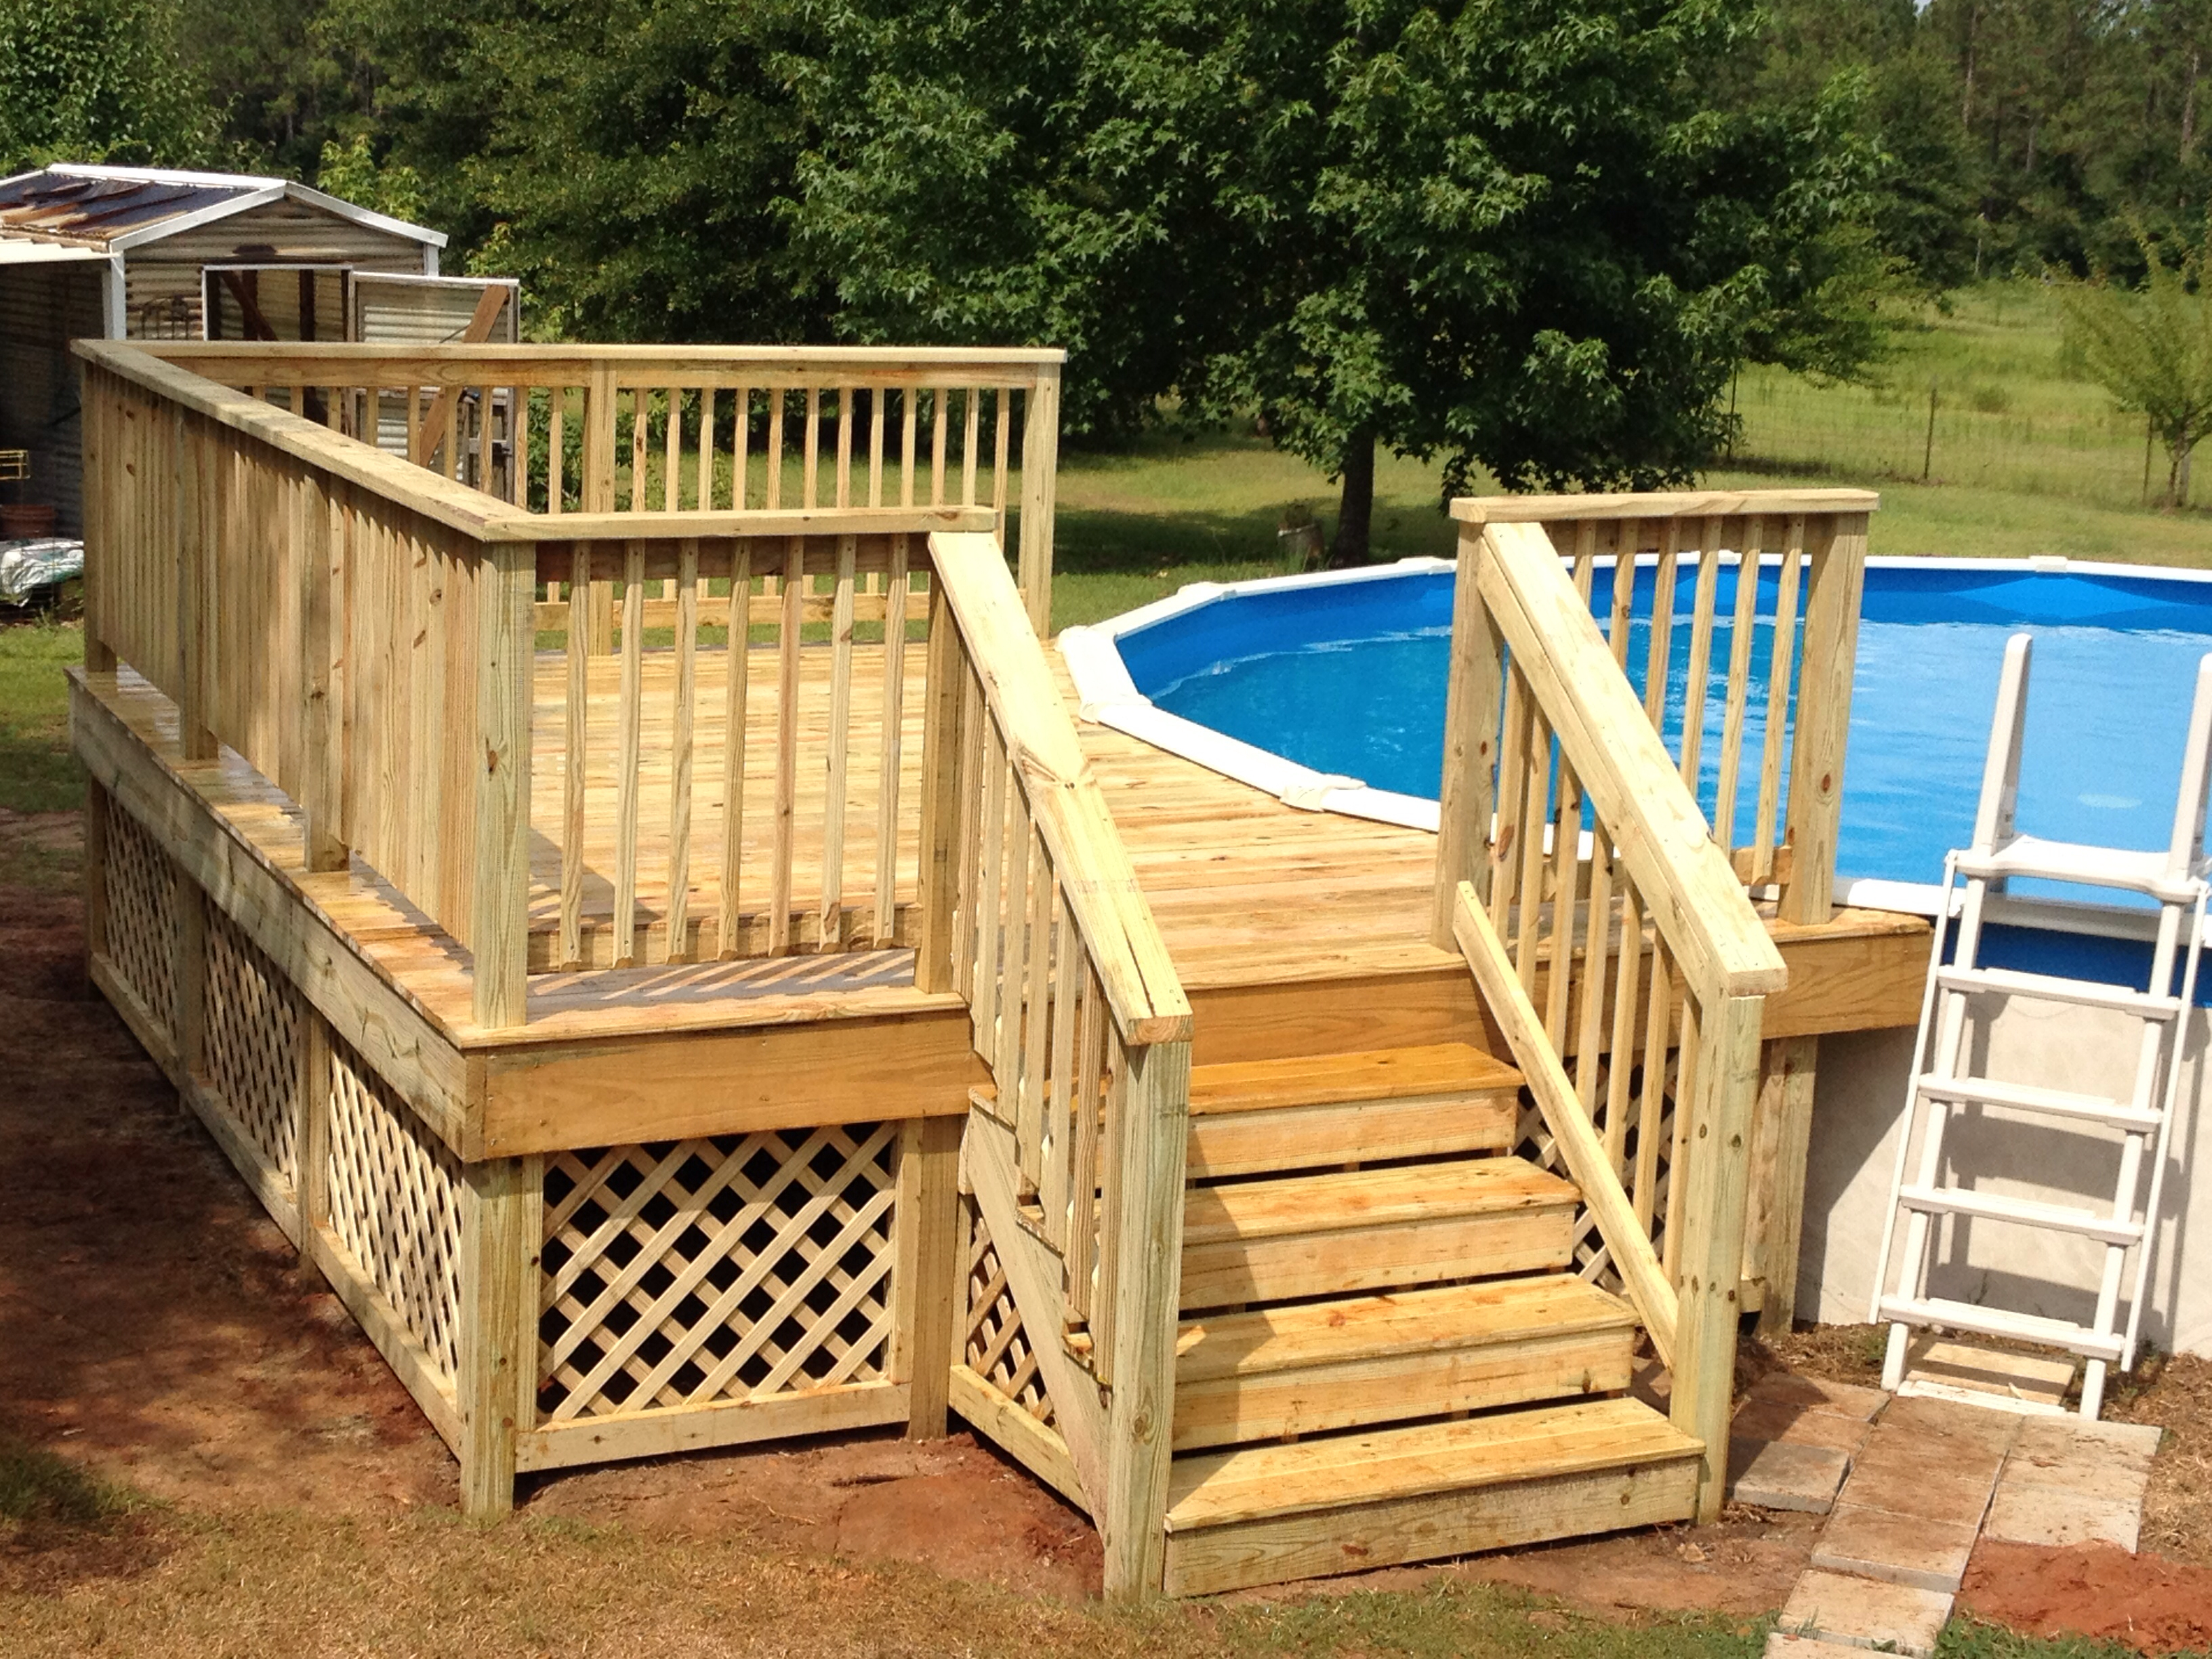 50 best above ground pools with decks - Above ground pool deck ideas on a budget ...